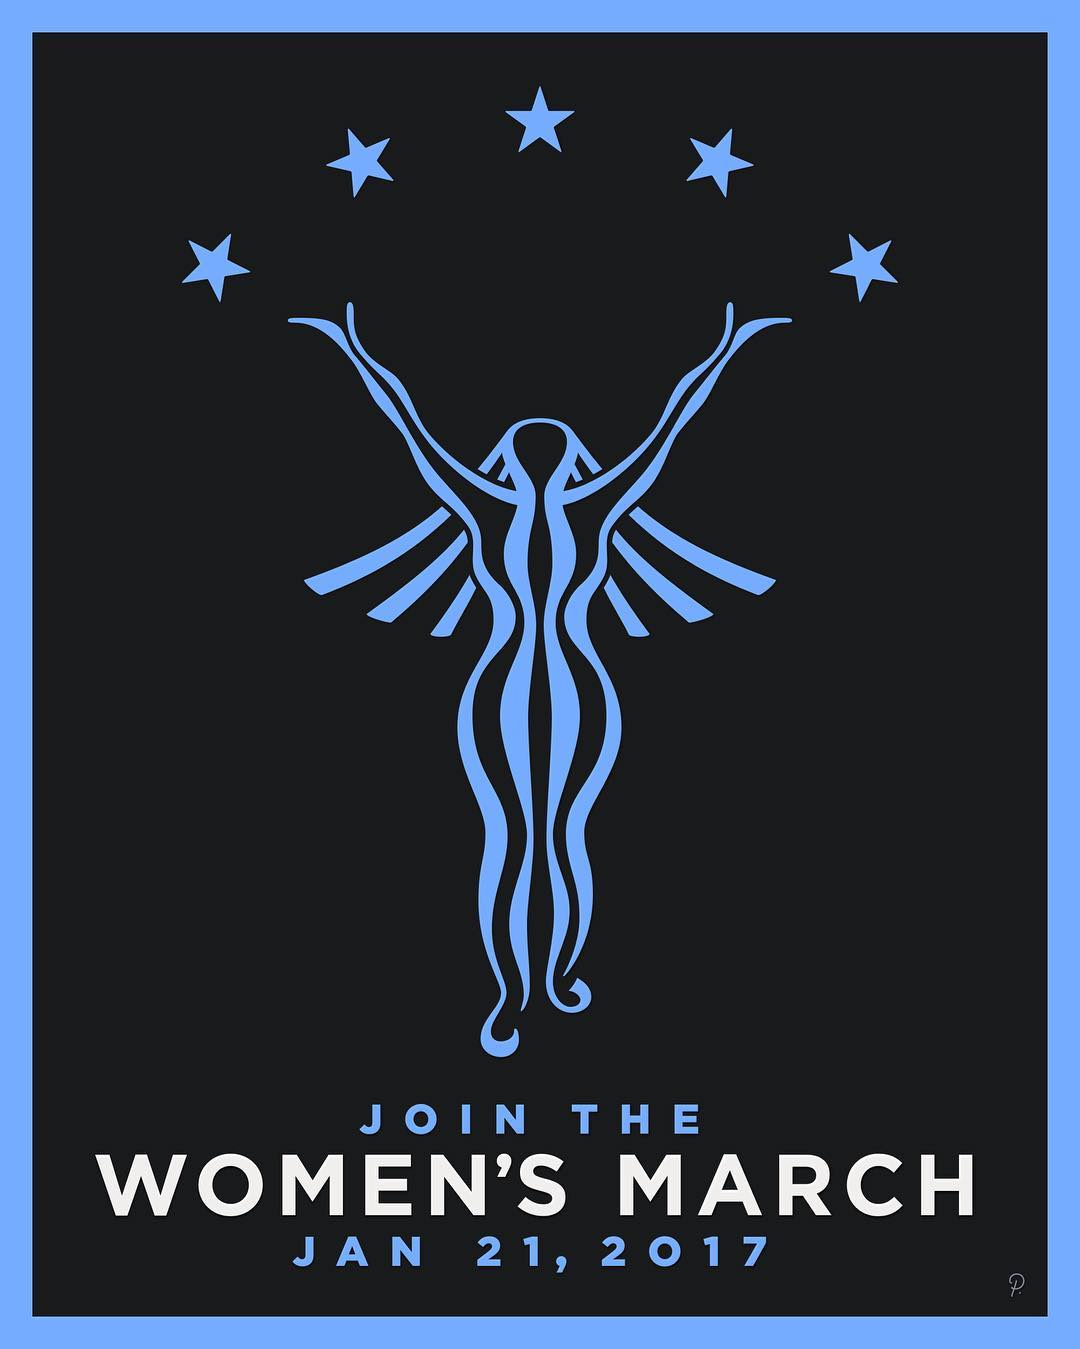 Today_is_historic._Around_the_world__people_of_all_identities_are_showing_up_for_equality._For_rights__and_freedom__and_dignity._I_ll_see_you_out_there______womensmarch__womensmarchonwashington__wmwart__wmw__equality__strongertogether.jpg